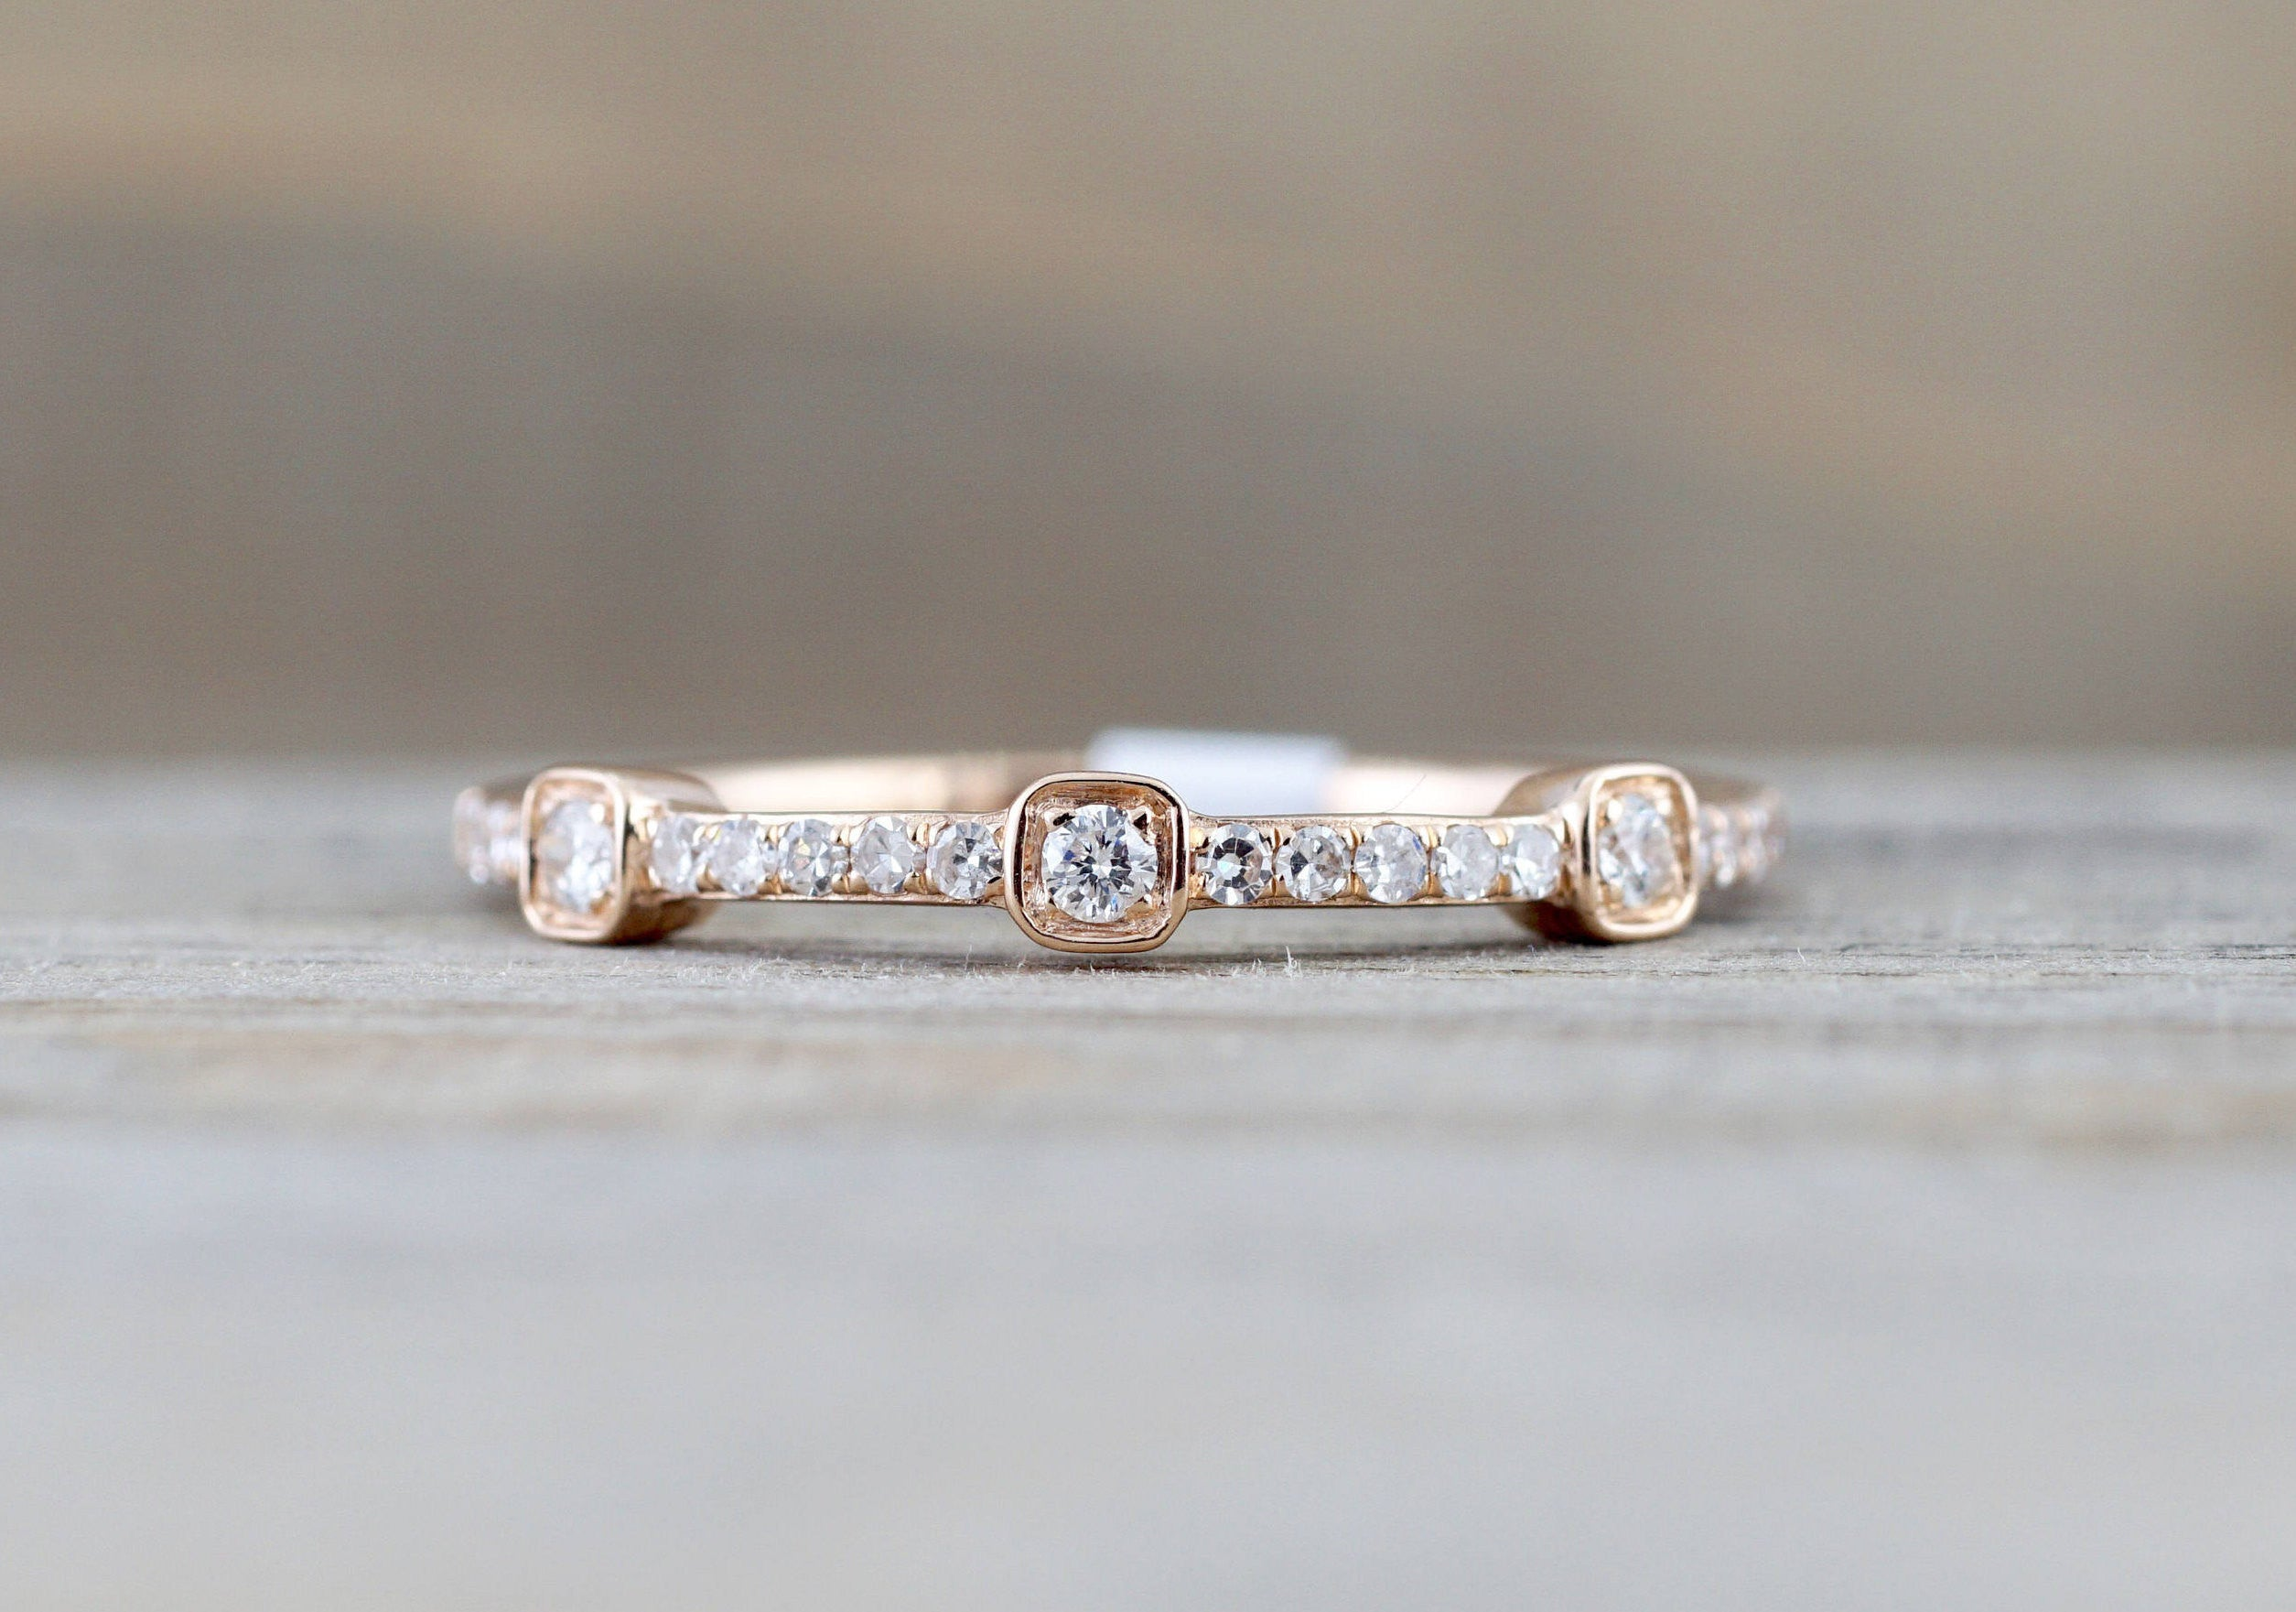 14 Karat Rose Gold Dainty Diamond Band Wedding Anniversary Love Ring Band Vintage Thin Bead Art Deco - Brilliant Facets